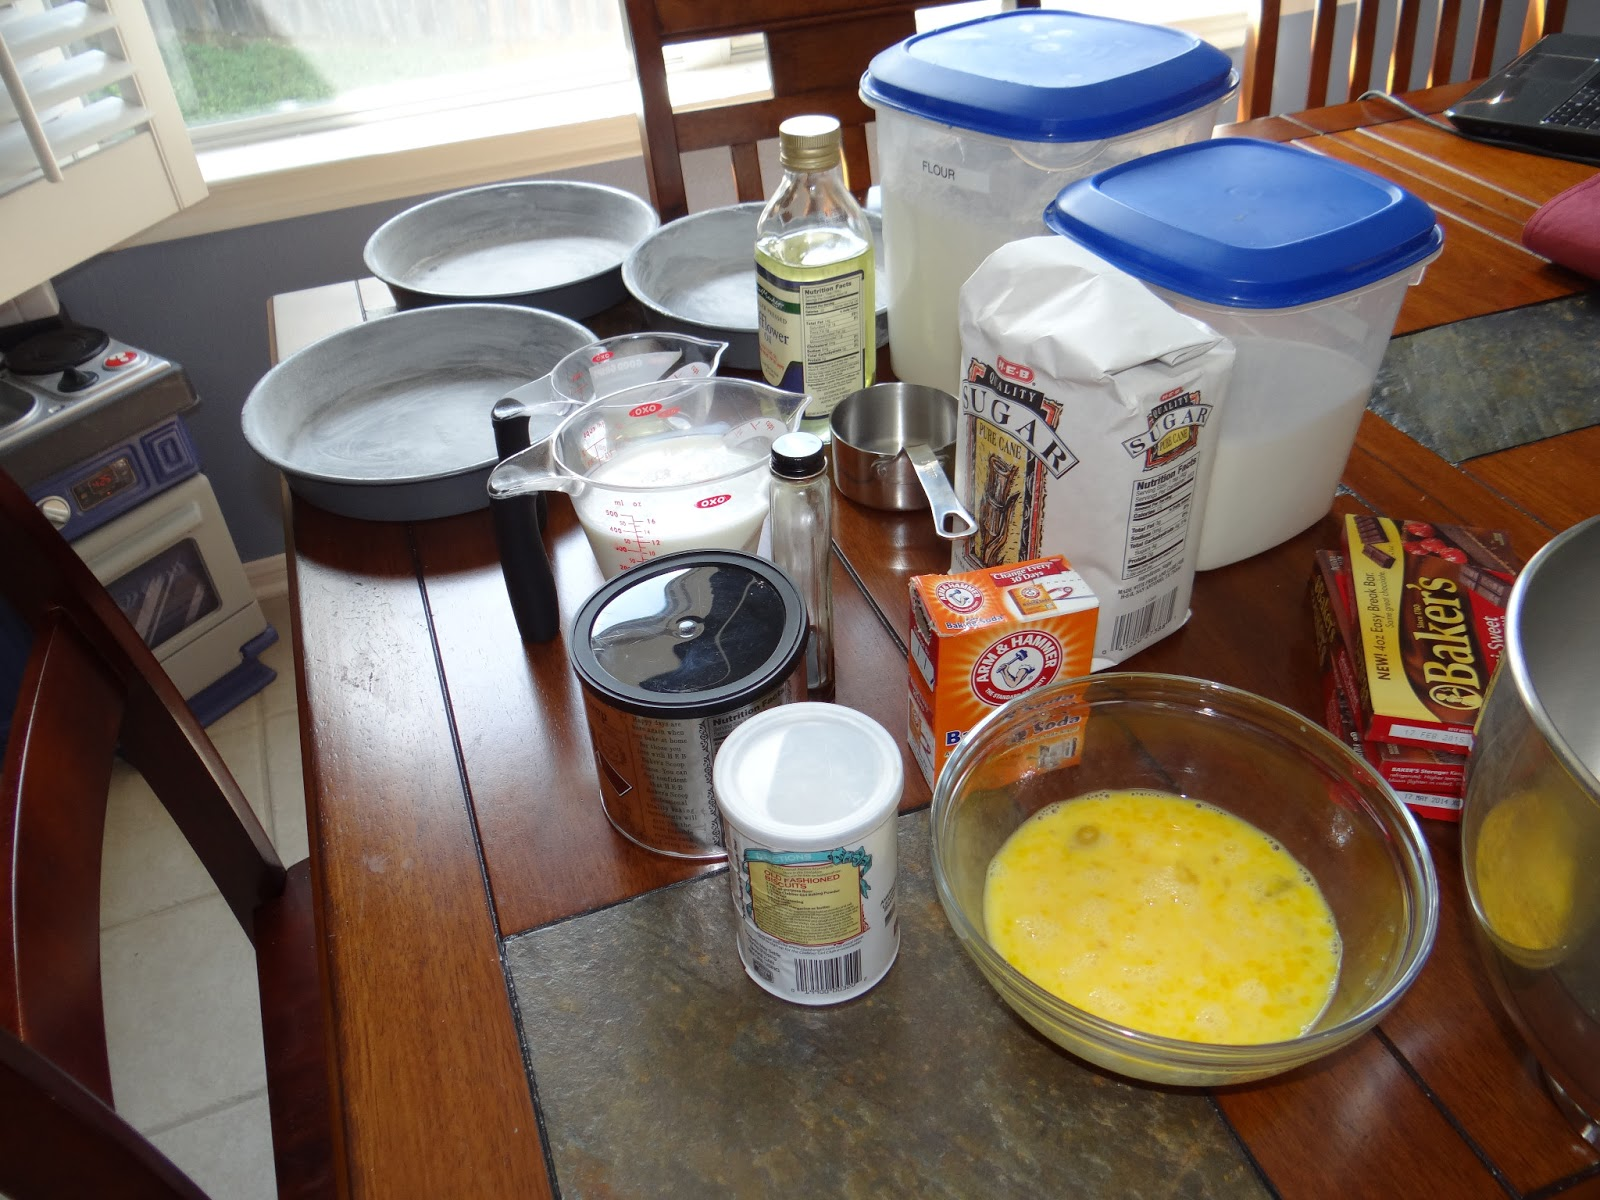 Can You Use Pam To Grease And Flour Cake Pans